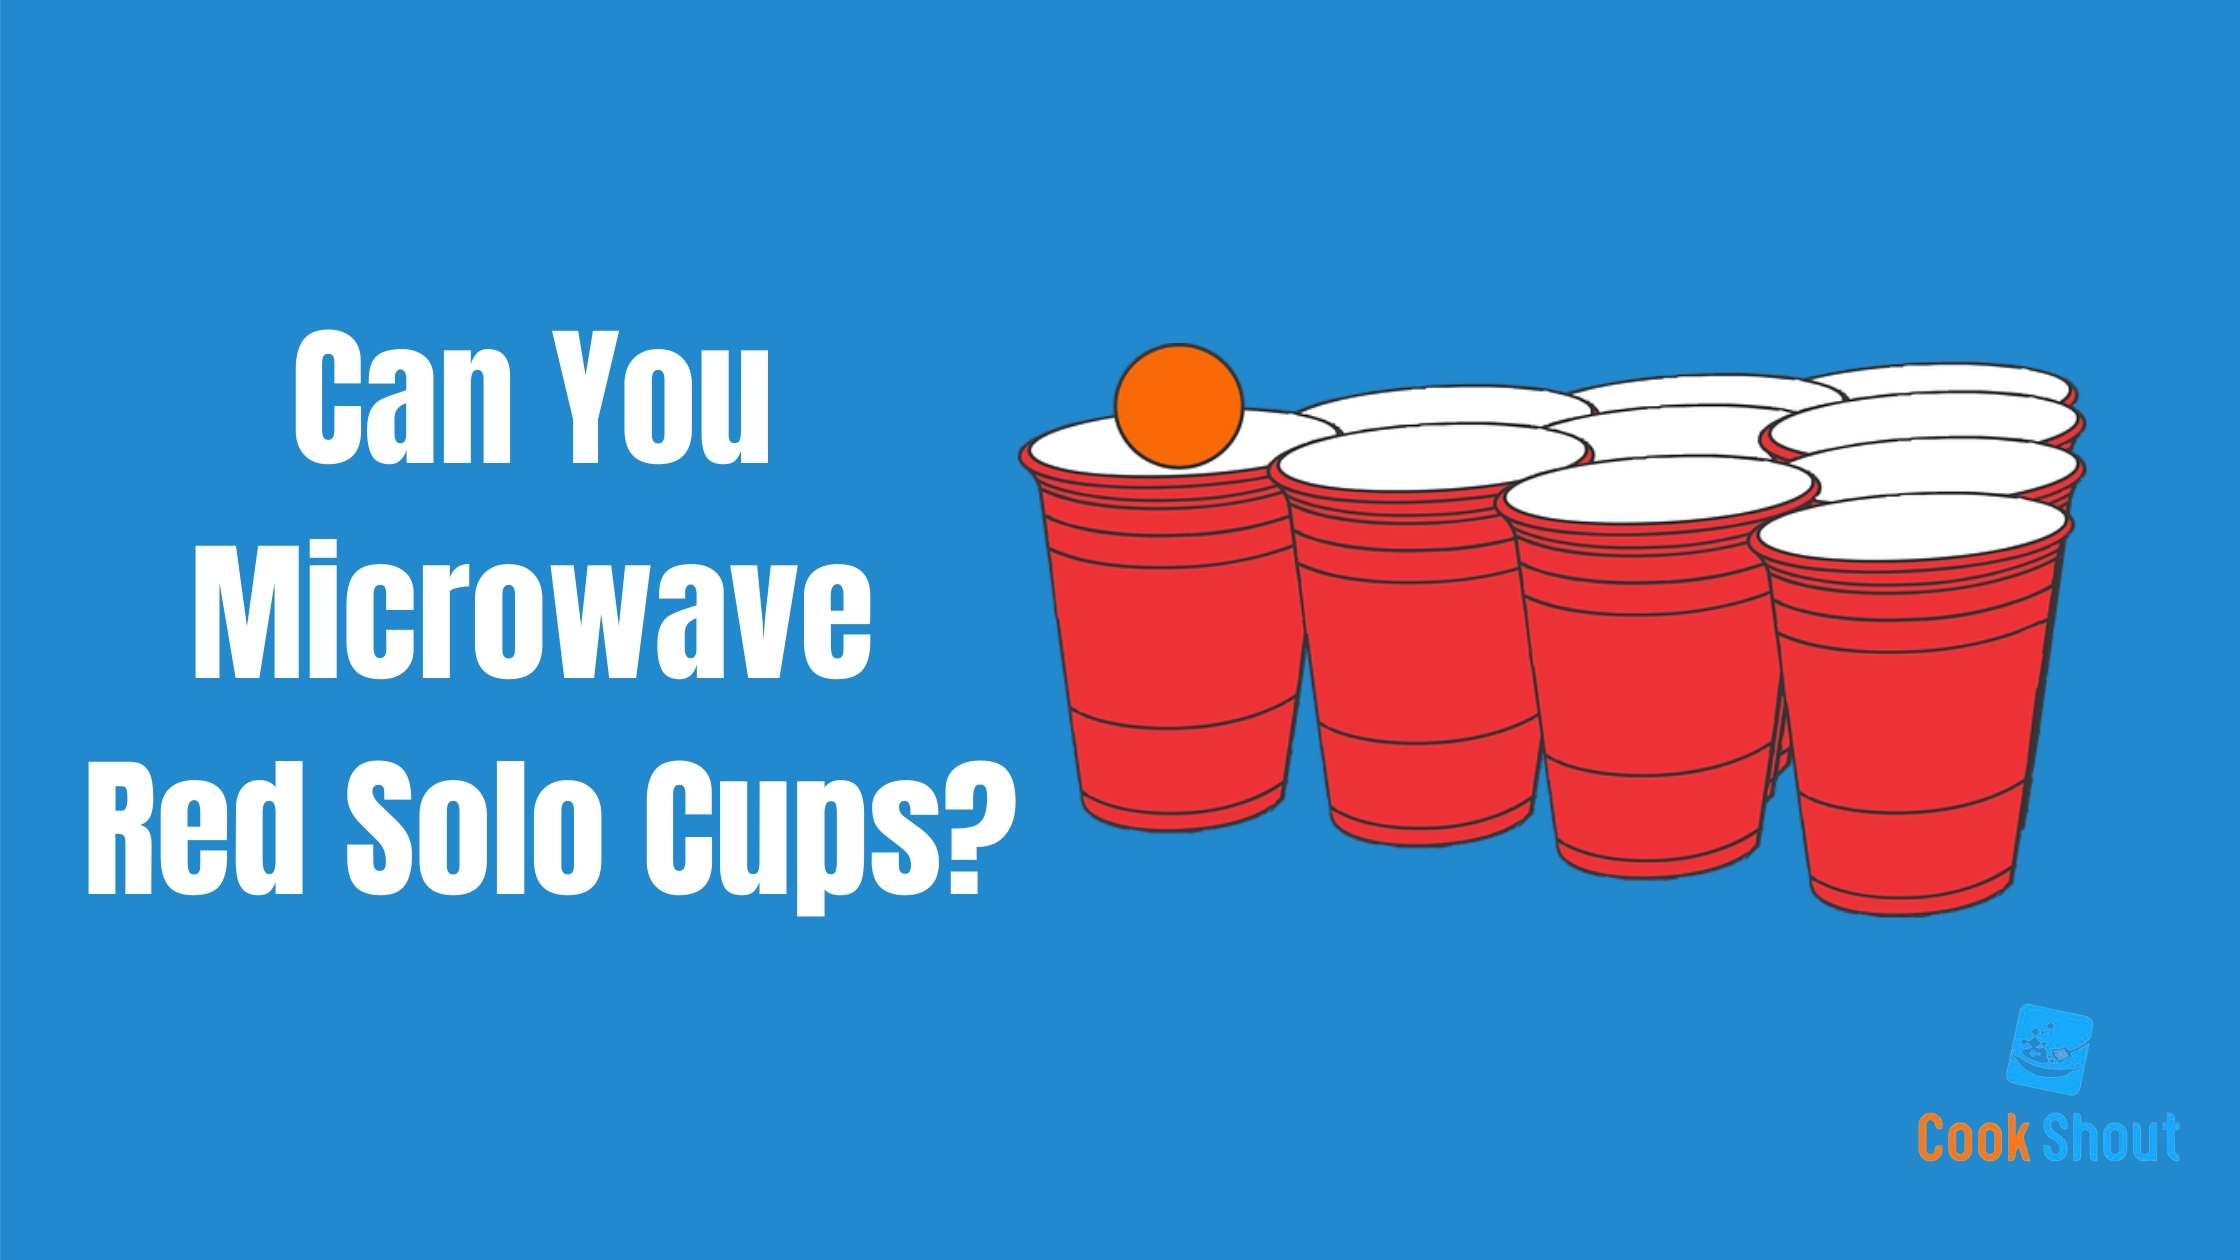 Can You Microwave Red Solo Cups